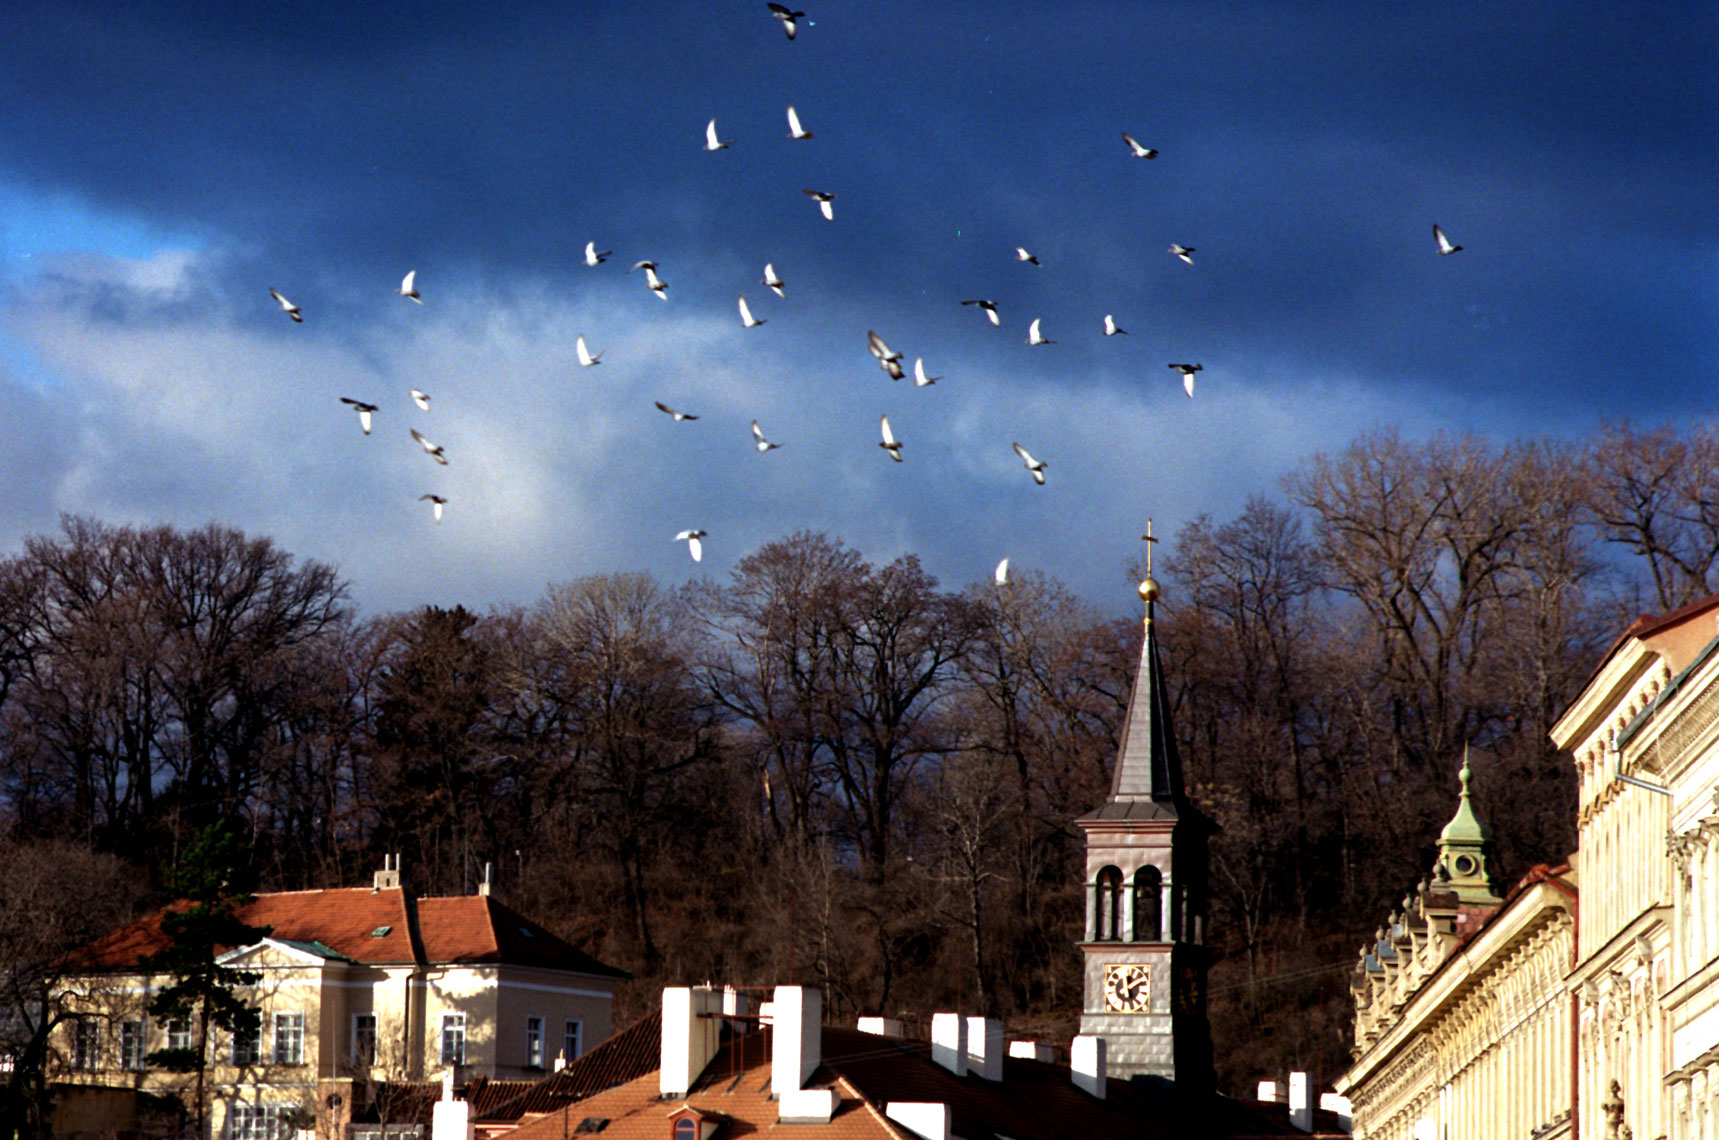 Prague-steeple-and-birds